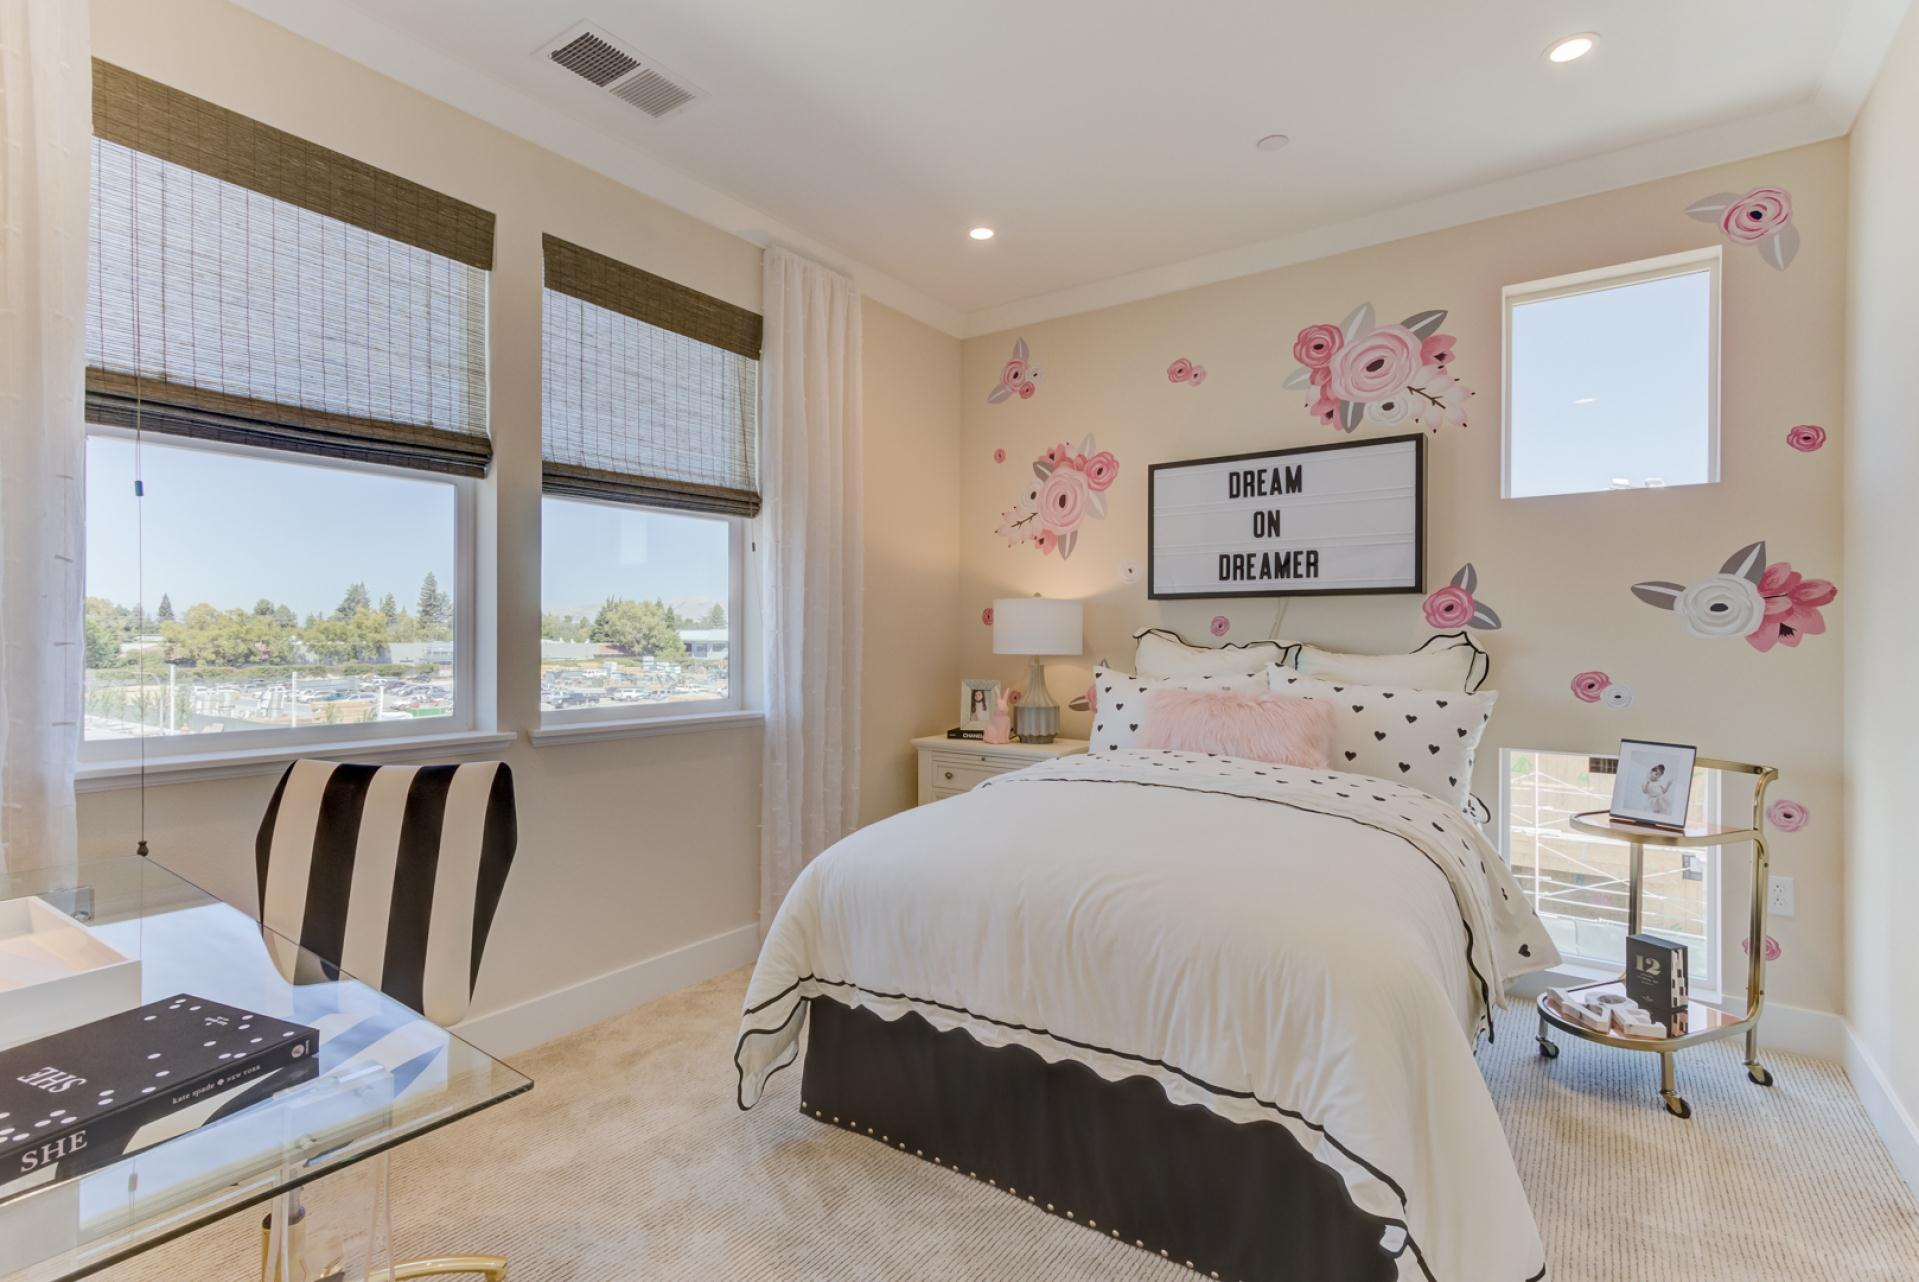 Bedroom featured in the Terraces Plan 5 By SummerHill Homes in San Jose, CA